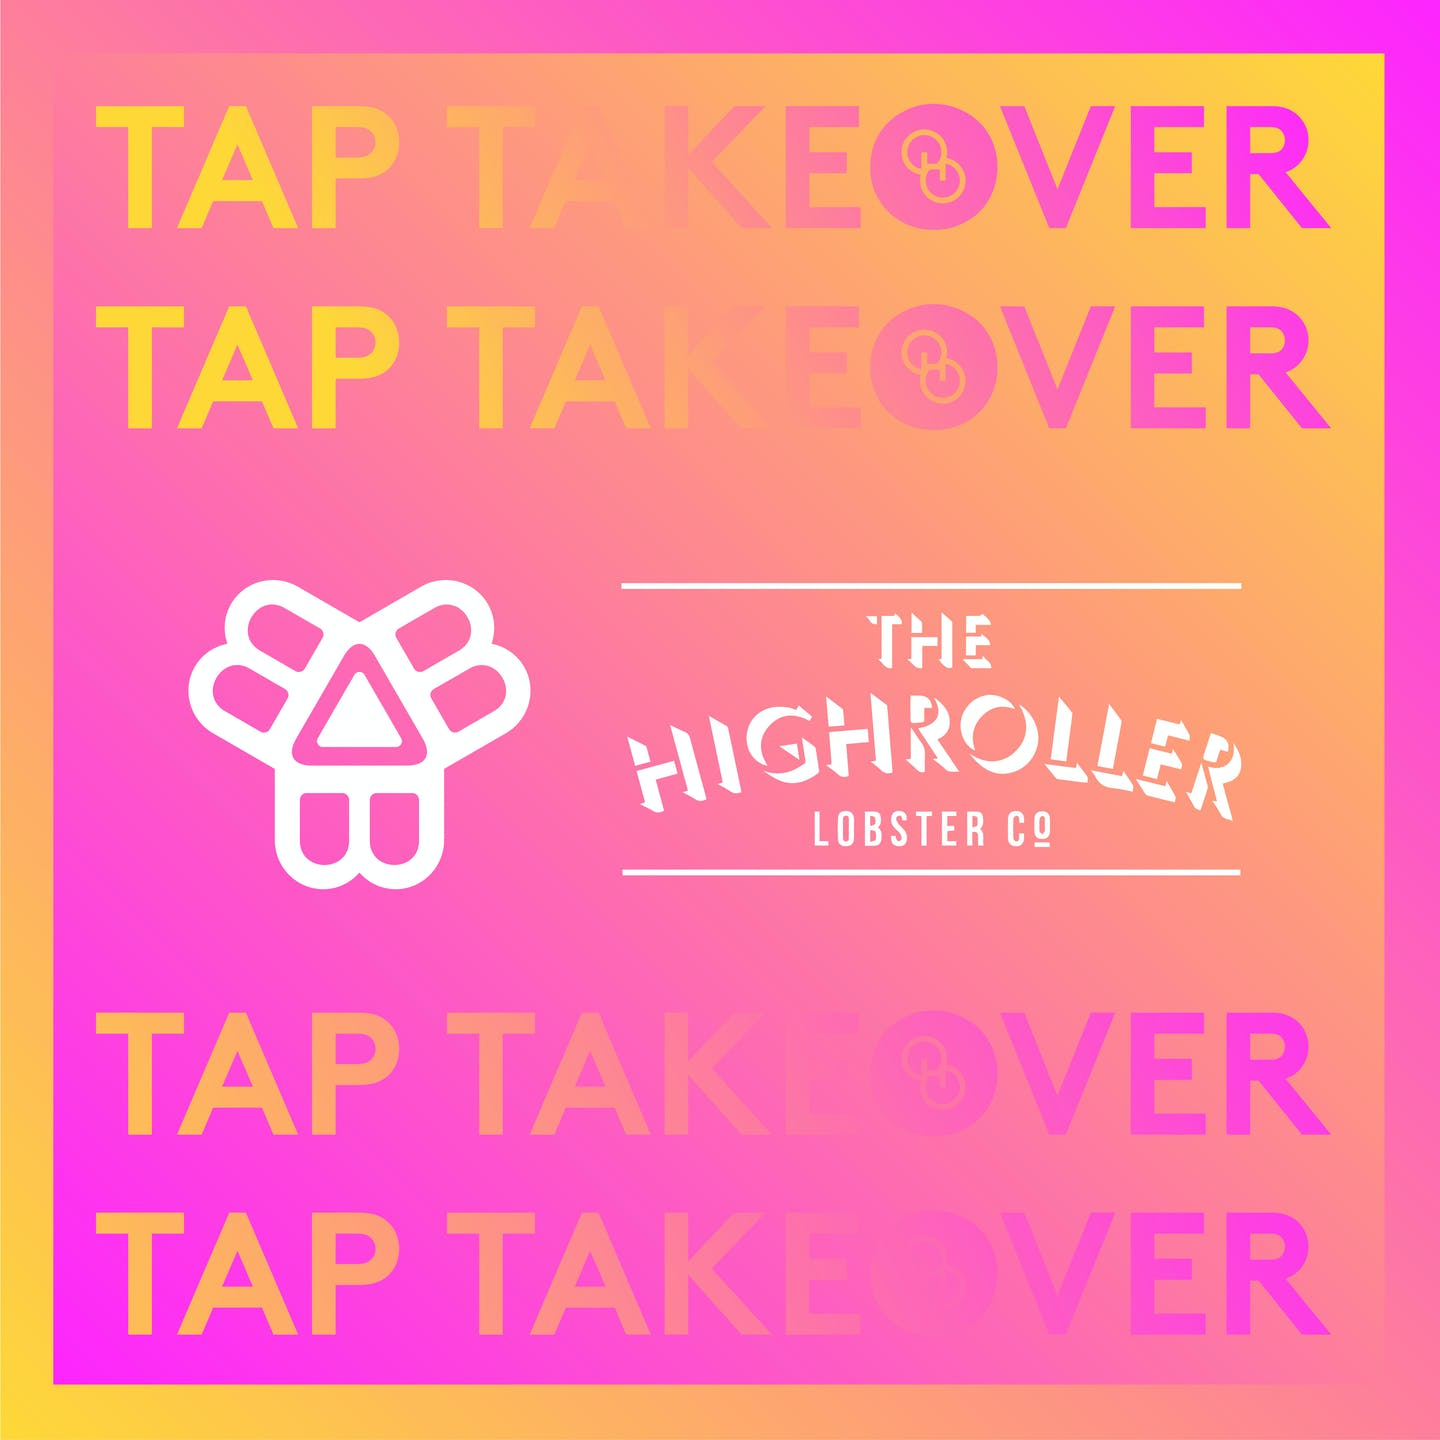 IG Square - Tap Takeover Bissell High Roller 062319-01